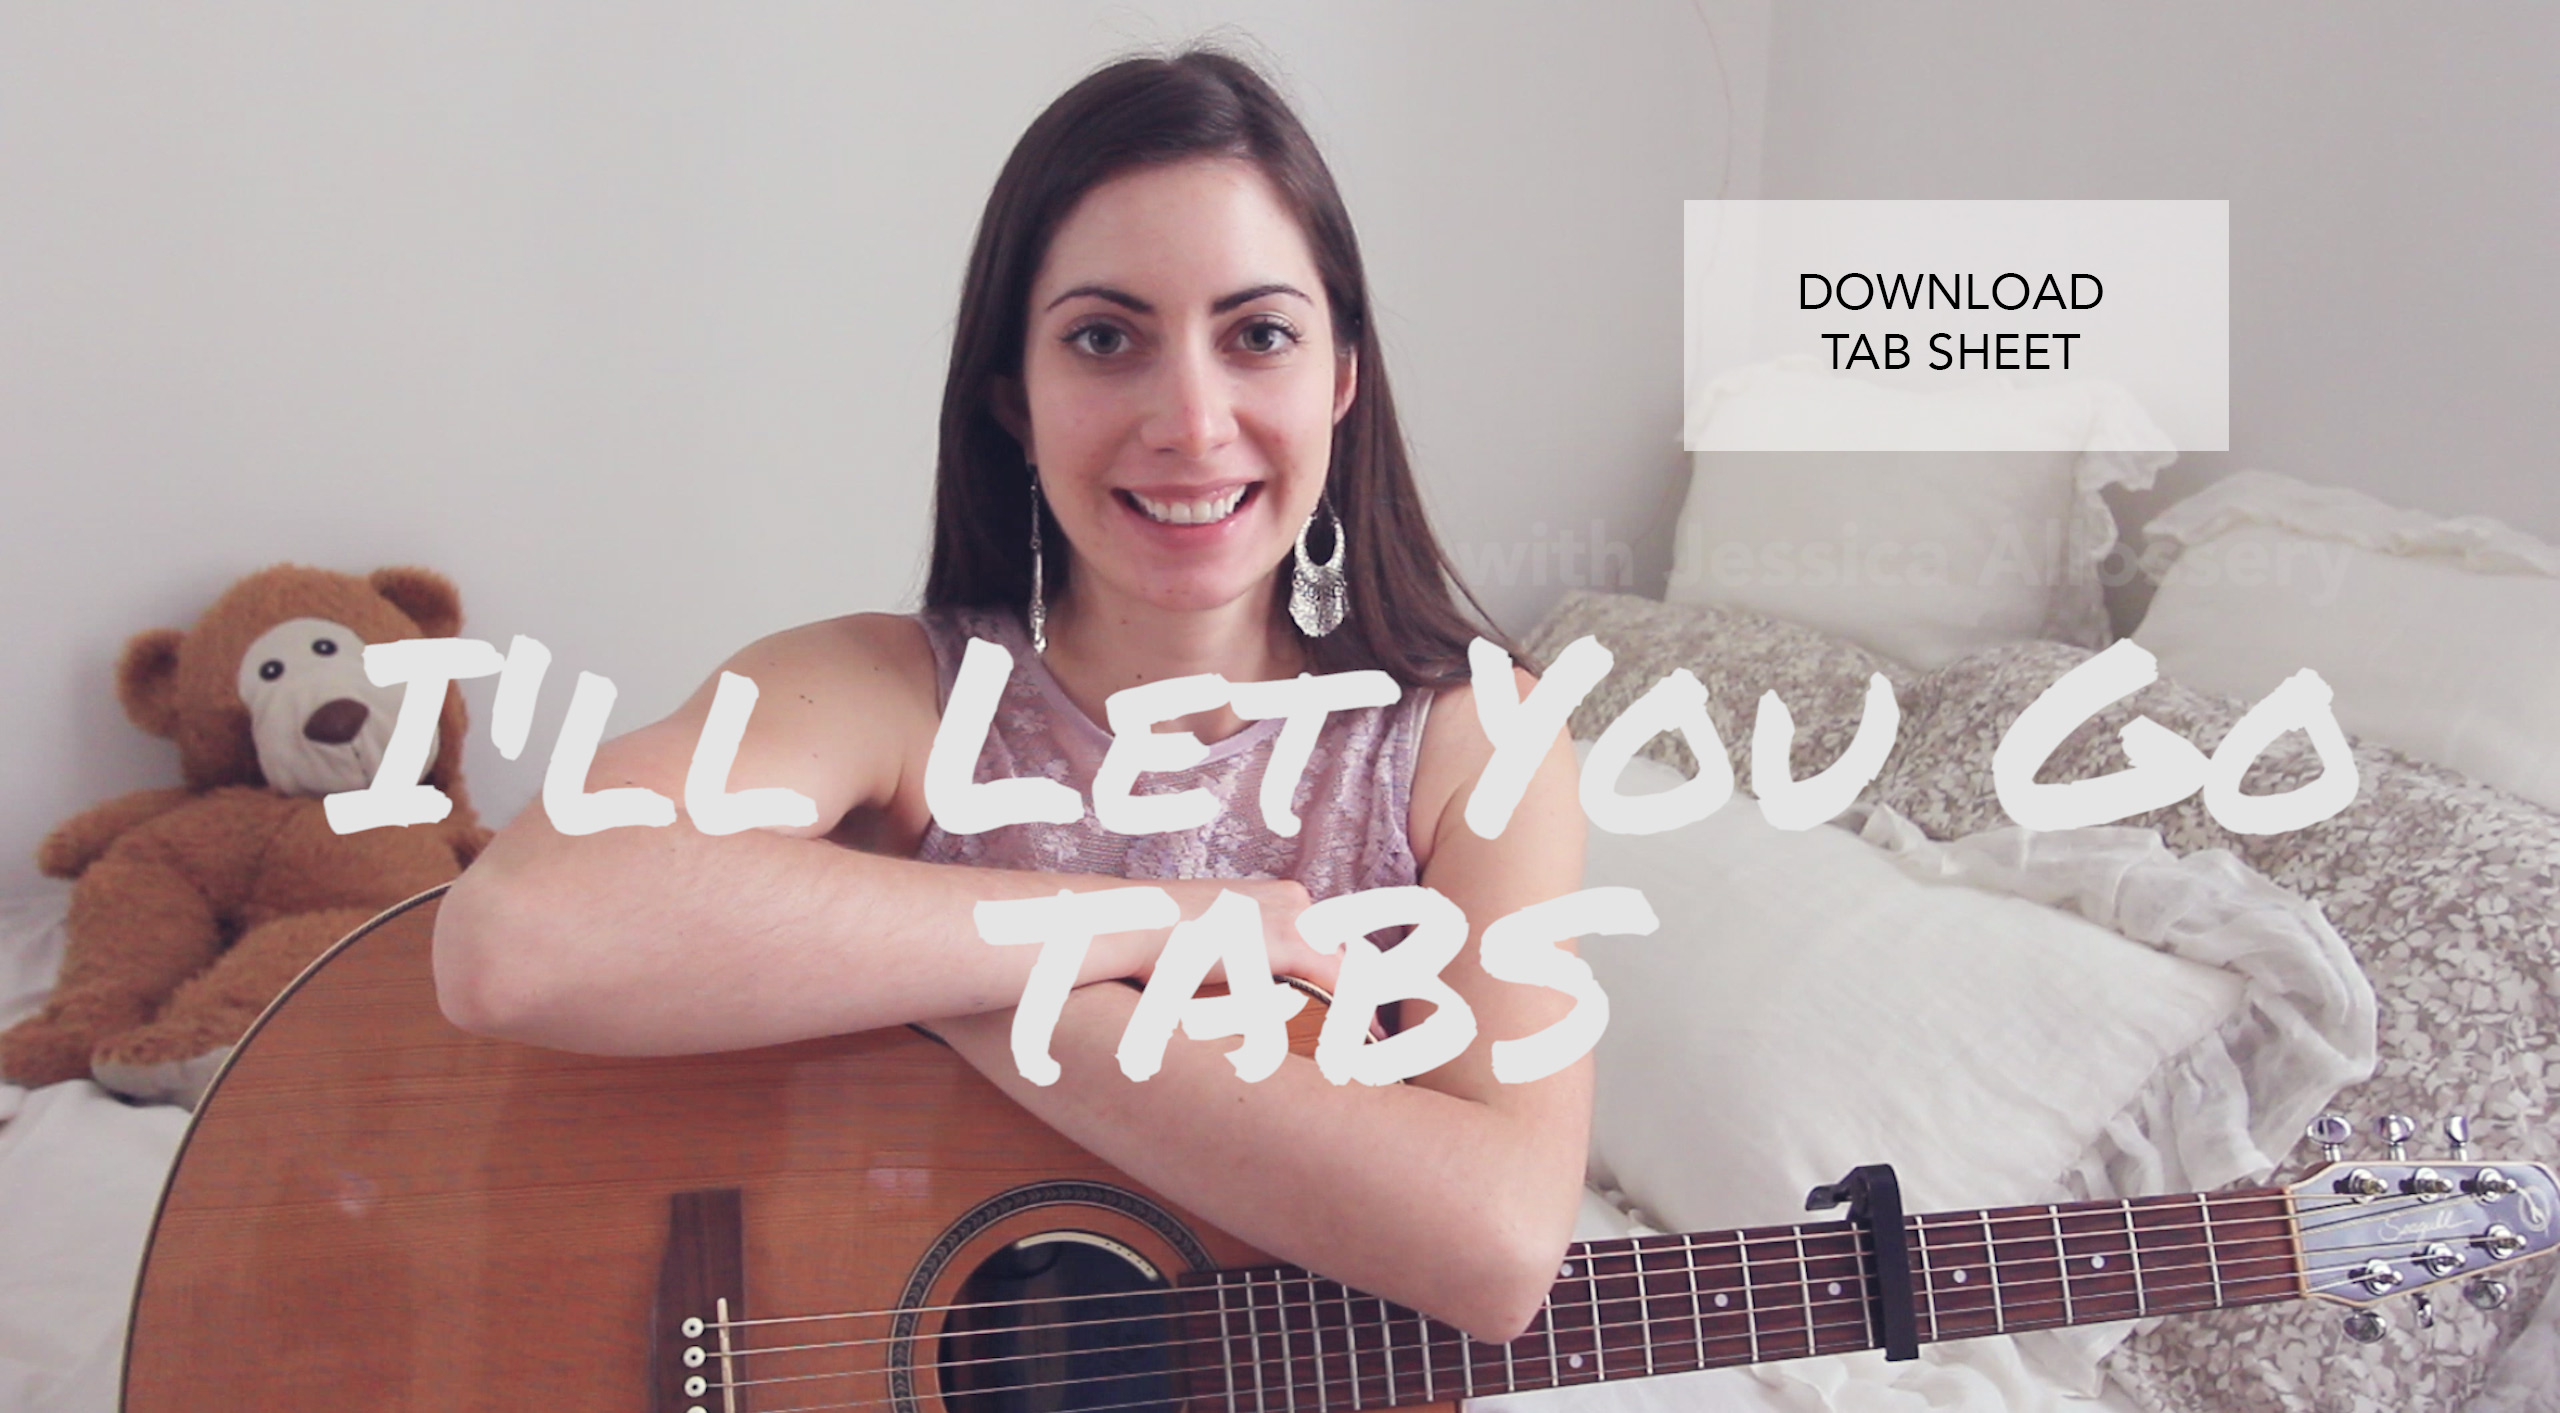 Ill Let You Go Lyrics By Jessica Allossery The Lovely Indie